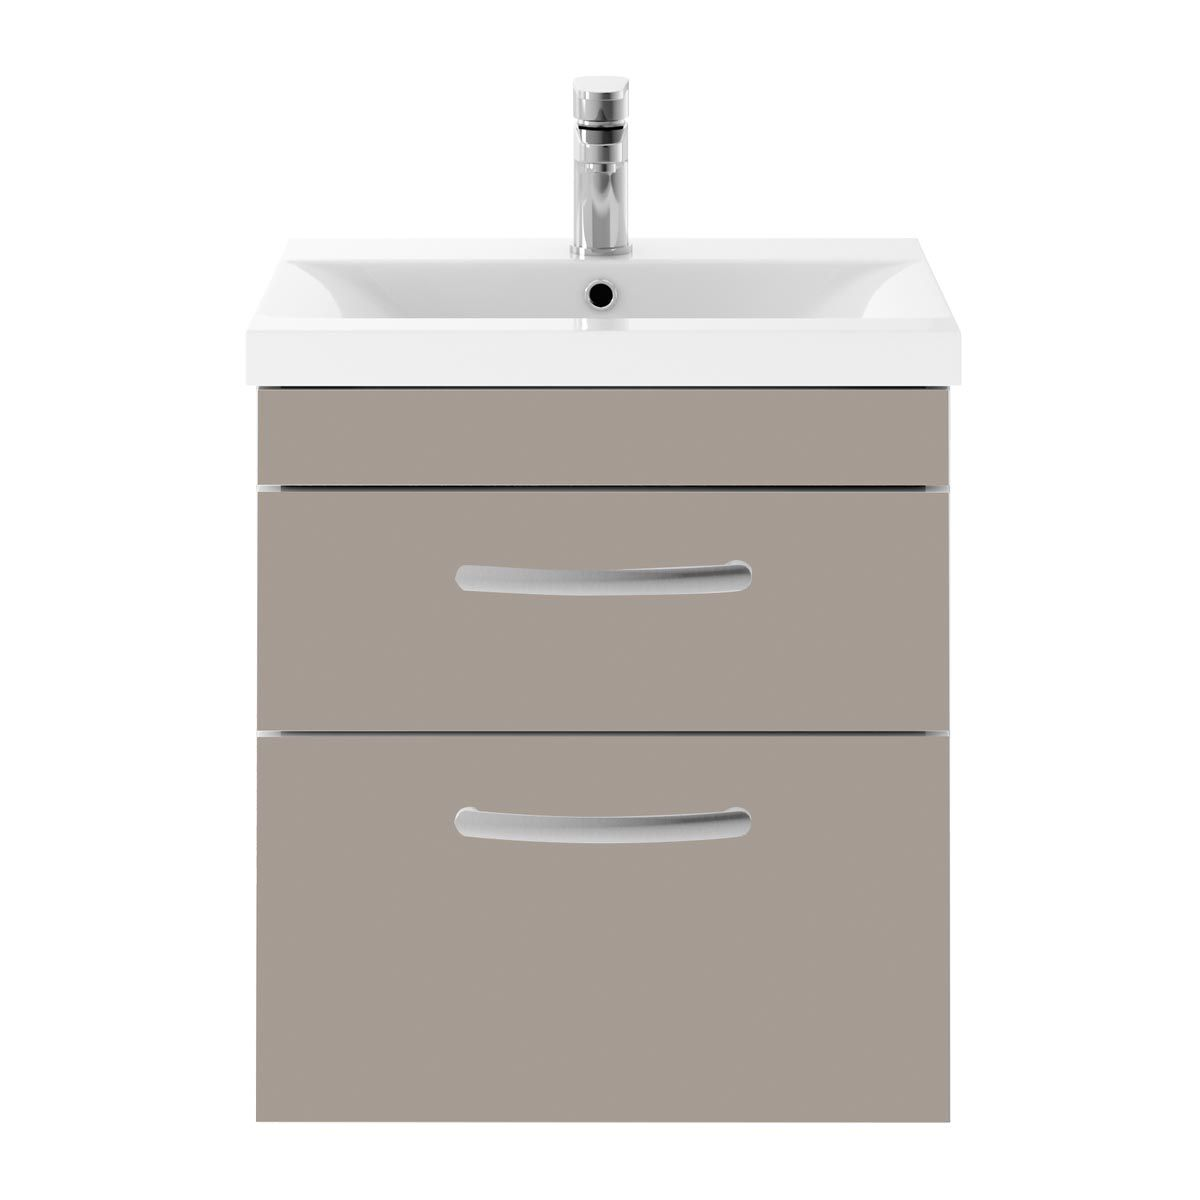 Nuie Athena Stone Grey 2 Drawer Wall Hung Vanity Unit with 40mm Profile Basin 500mm